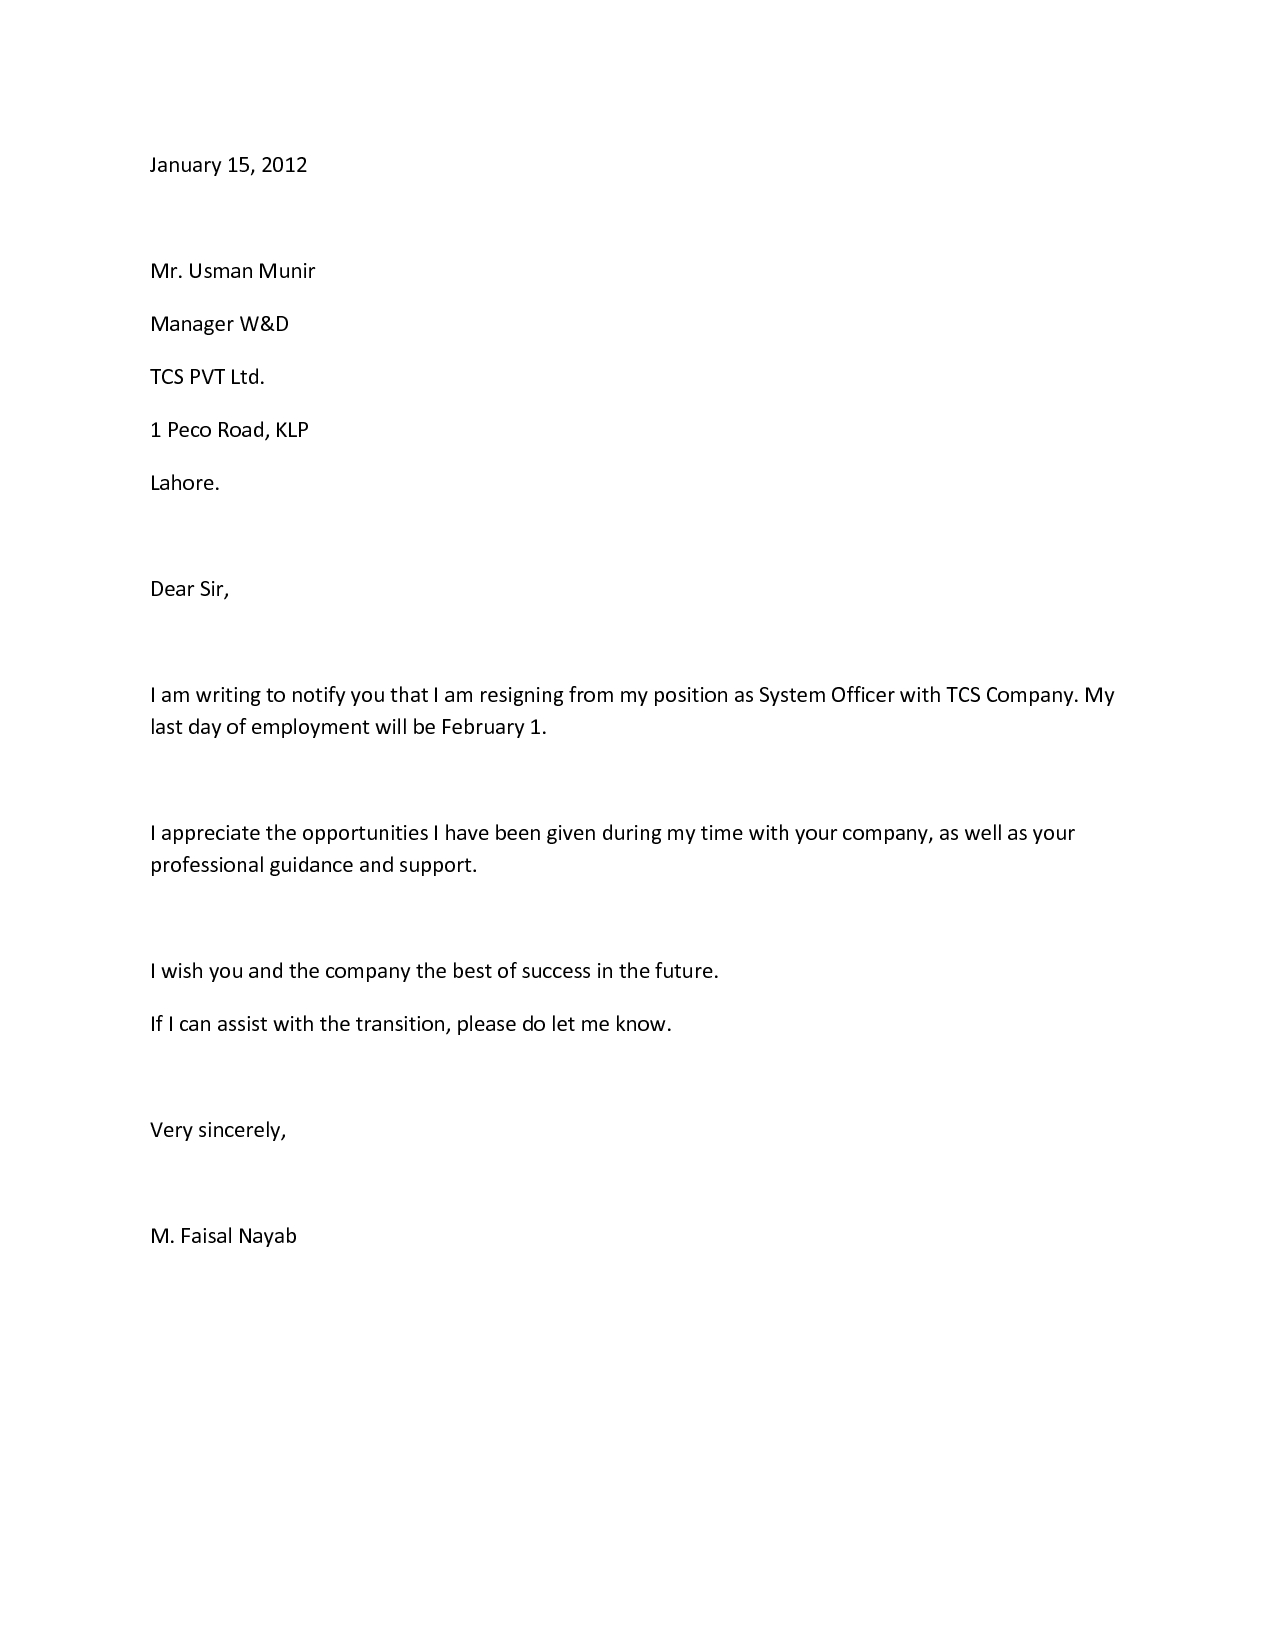 Official Letter Of Resignation Template - How to Write A Proper Resignation Letter Images